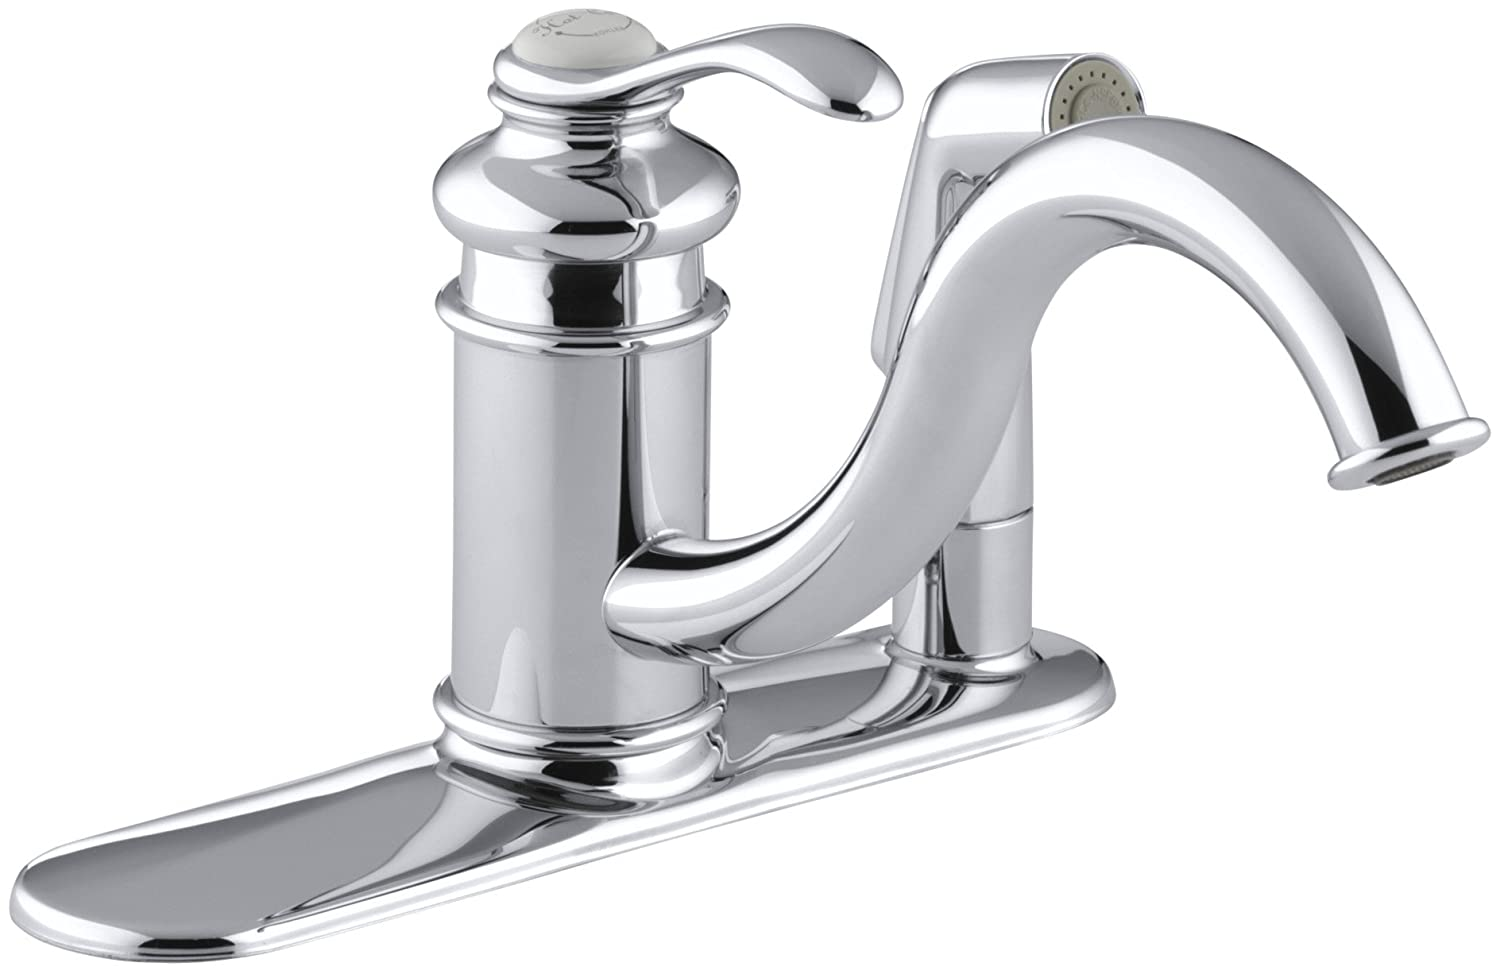 KOHLER 12173-CP Fairfax R Three-Hole Sink 9 spout and Matching Finish sidespray in Escutcheon Kitchen Faucet, Polished Chrome